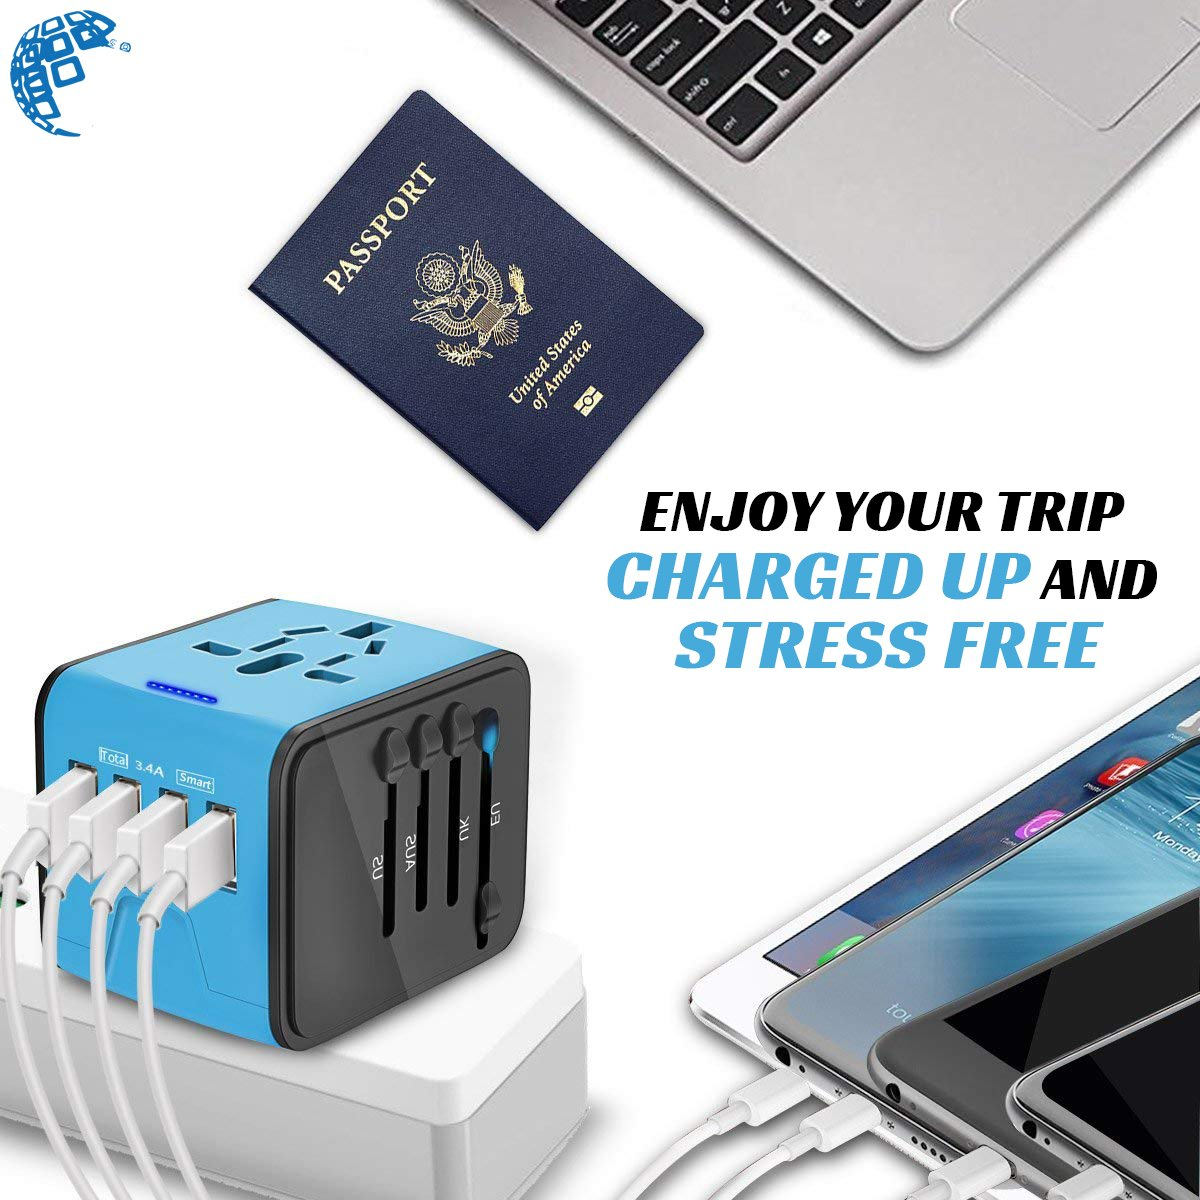 Universal Travel Adapter, International All in One Multi-Nation Worldwide 4-USB Power Charger - Travel to USA Europe Asia and UK Great for iPhone/Smartphones / Laptops & More by Digimad (Image #6)